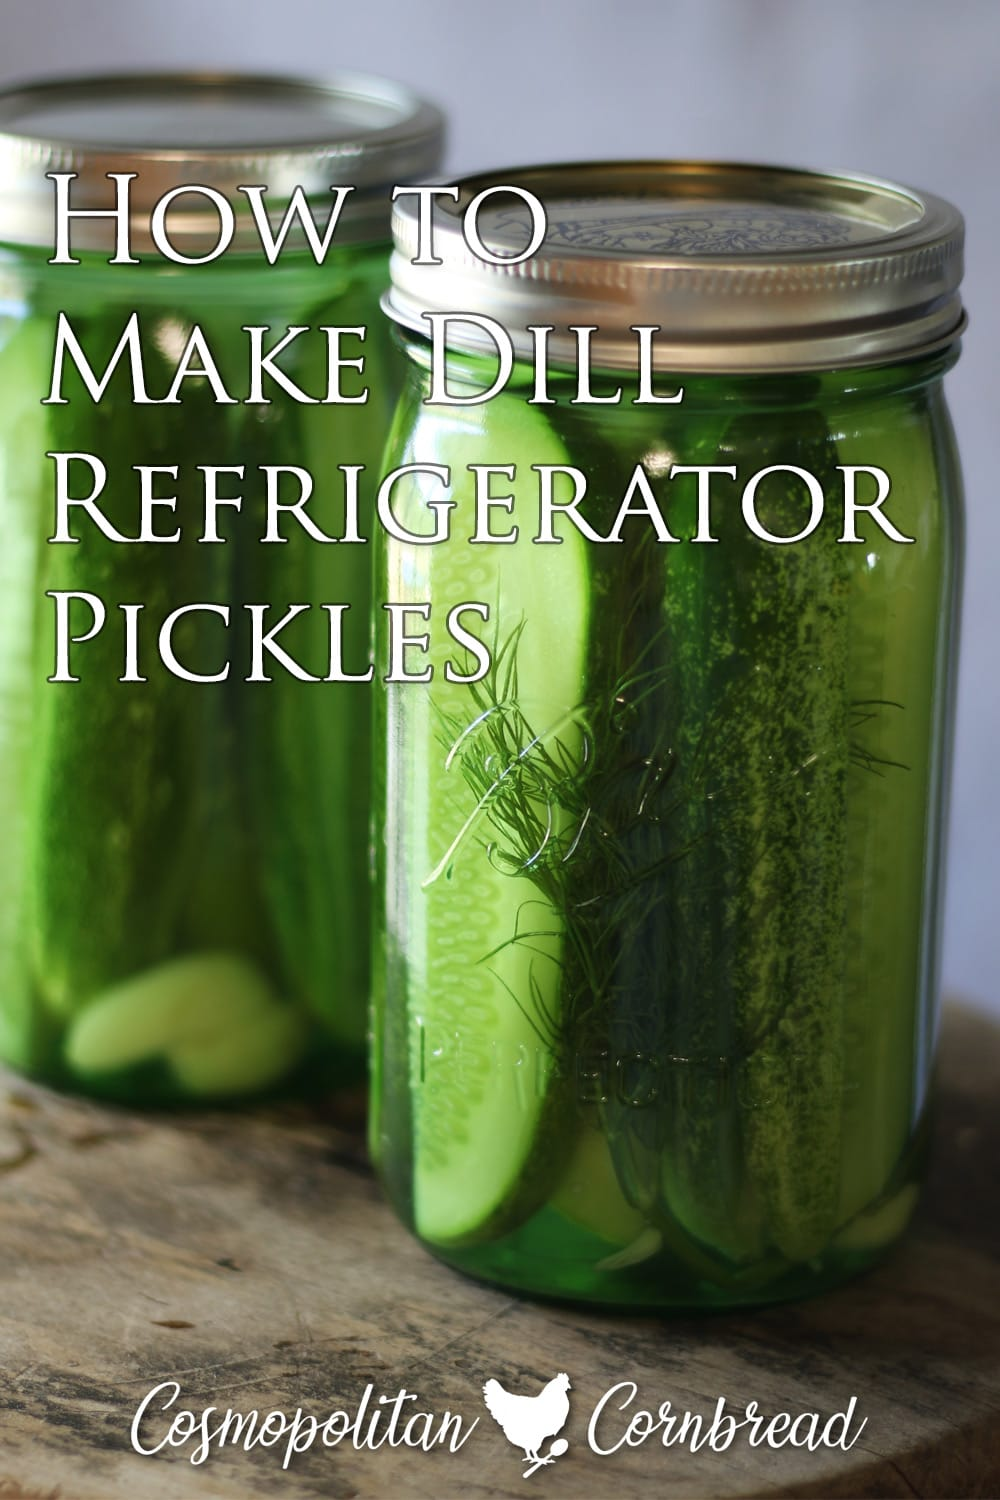 Making refrigerator pickles is the easiest way to enjoy homemade pickles, as there is no canning involved.